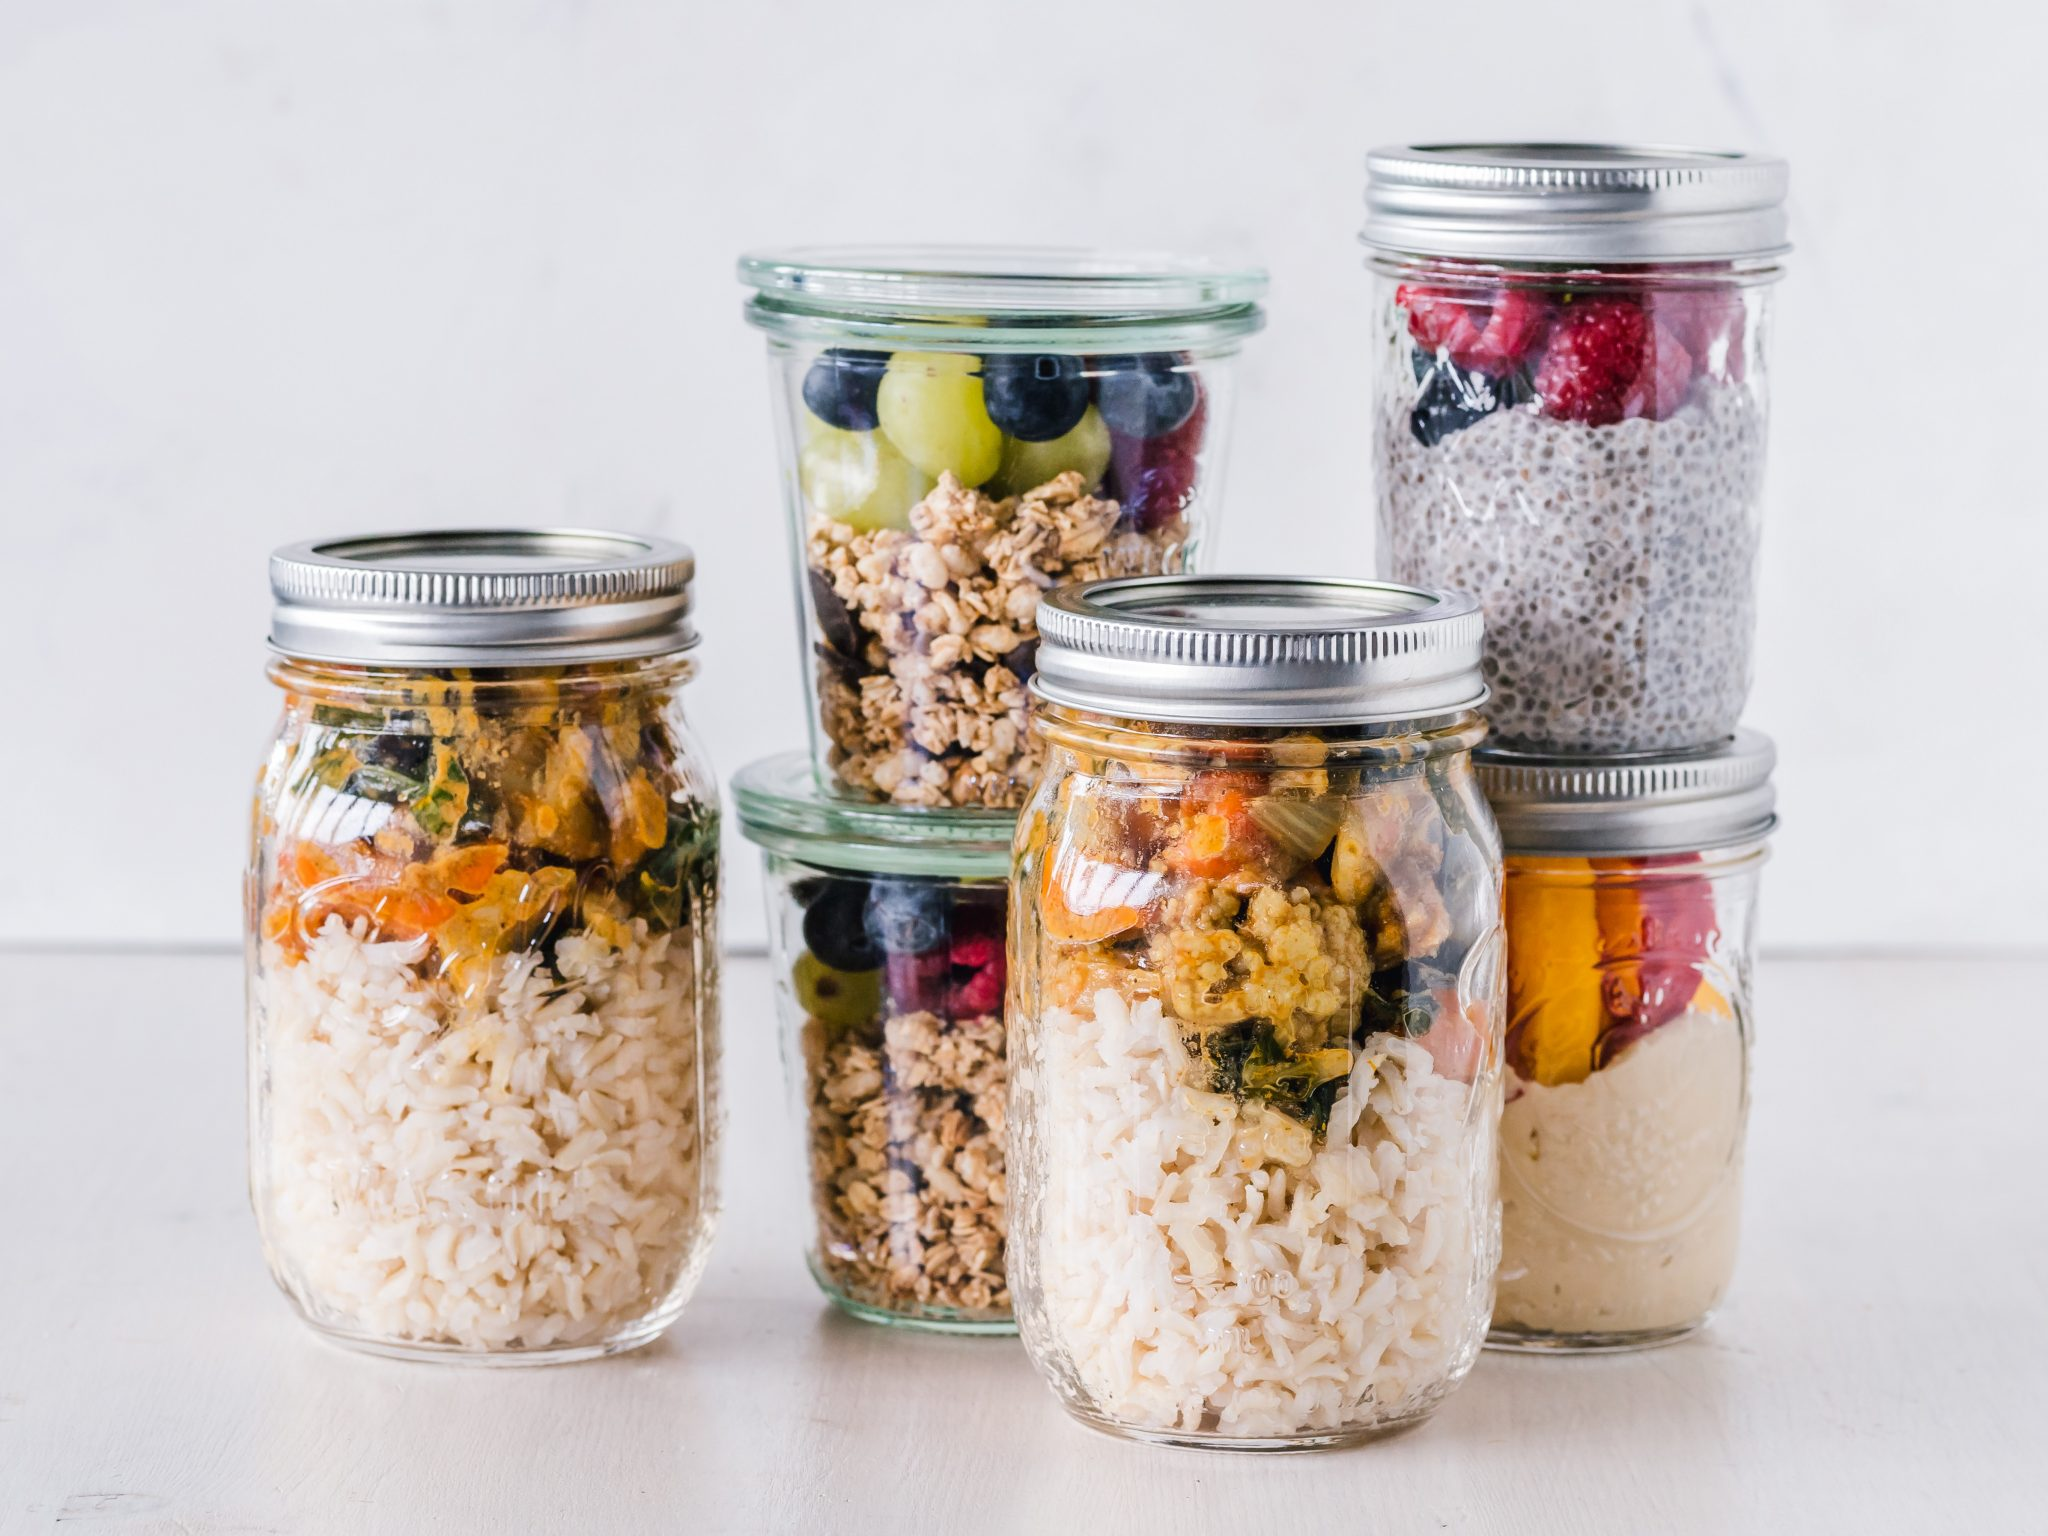 Jars of prepared food